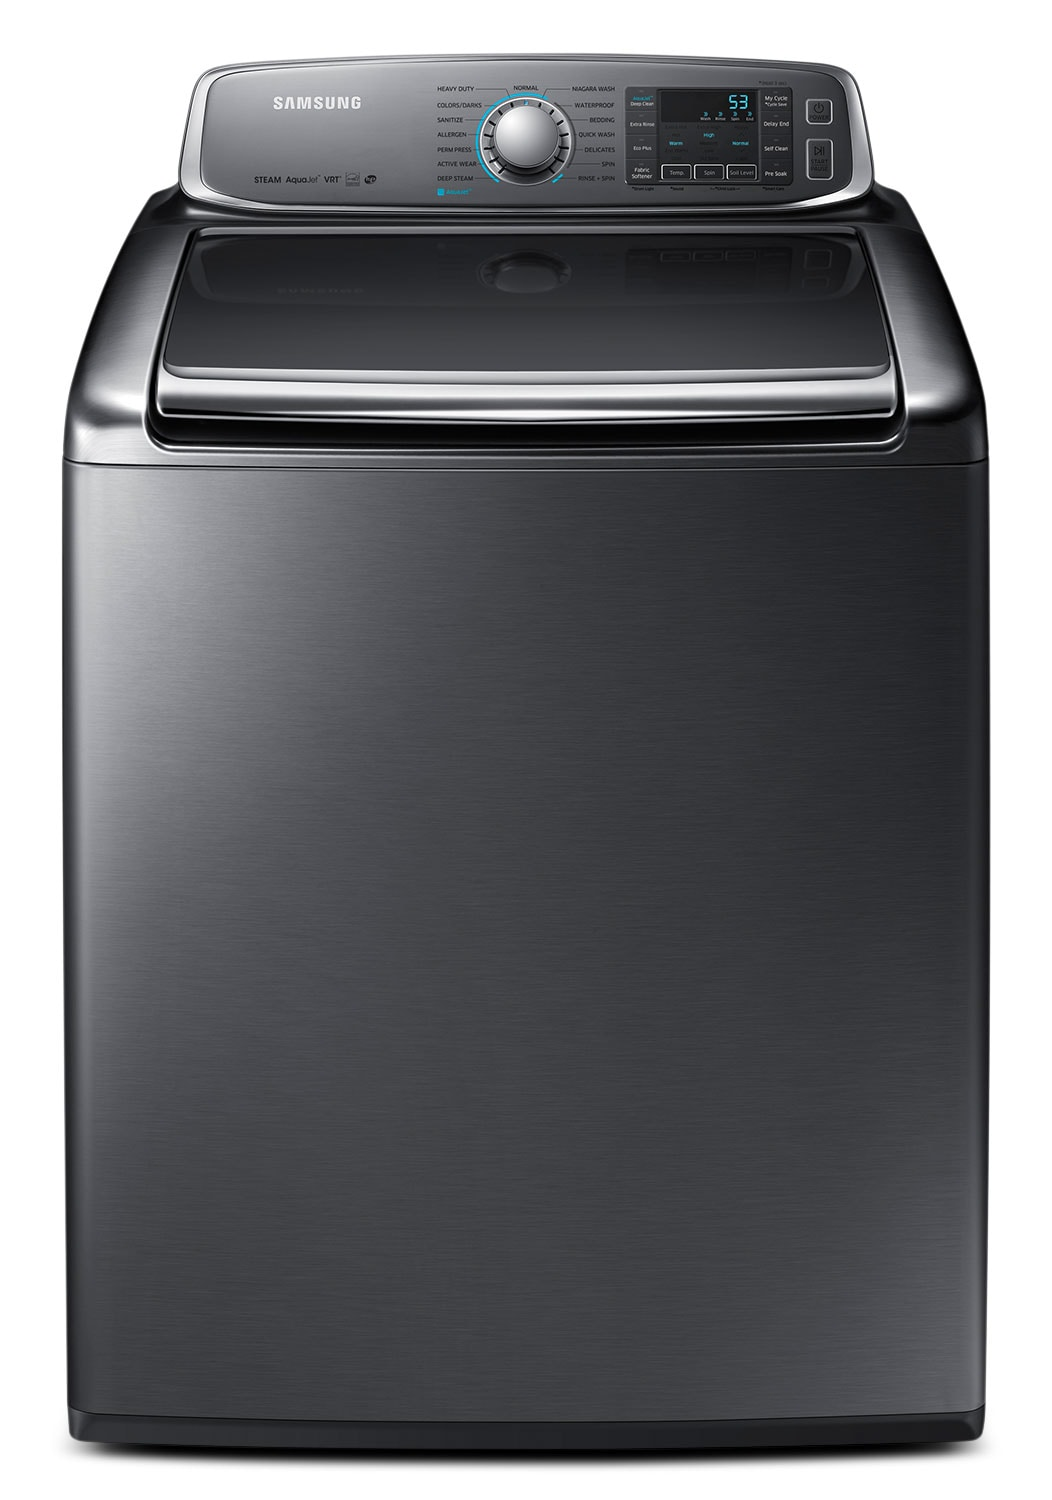 Samsung Platinum Top-Load Washer (6.5 Cu. Ft.) - WA56H9000AP